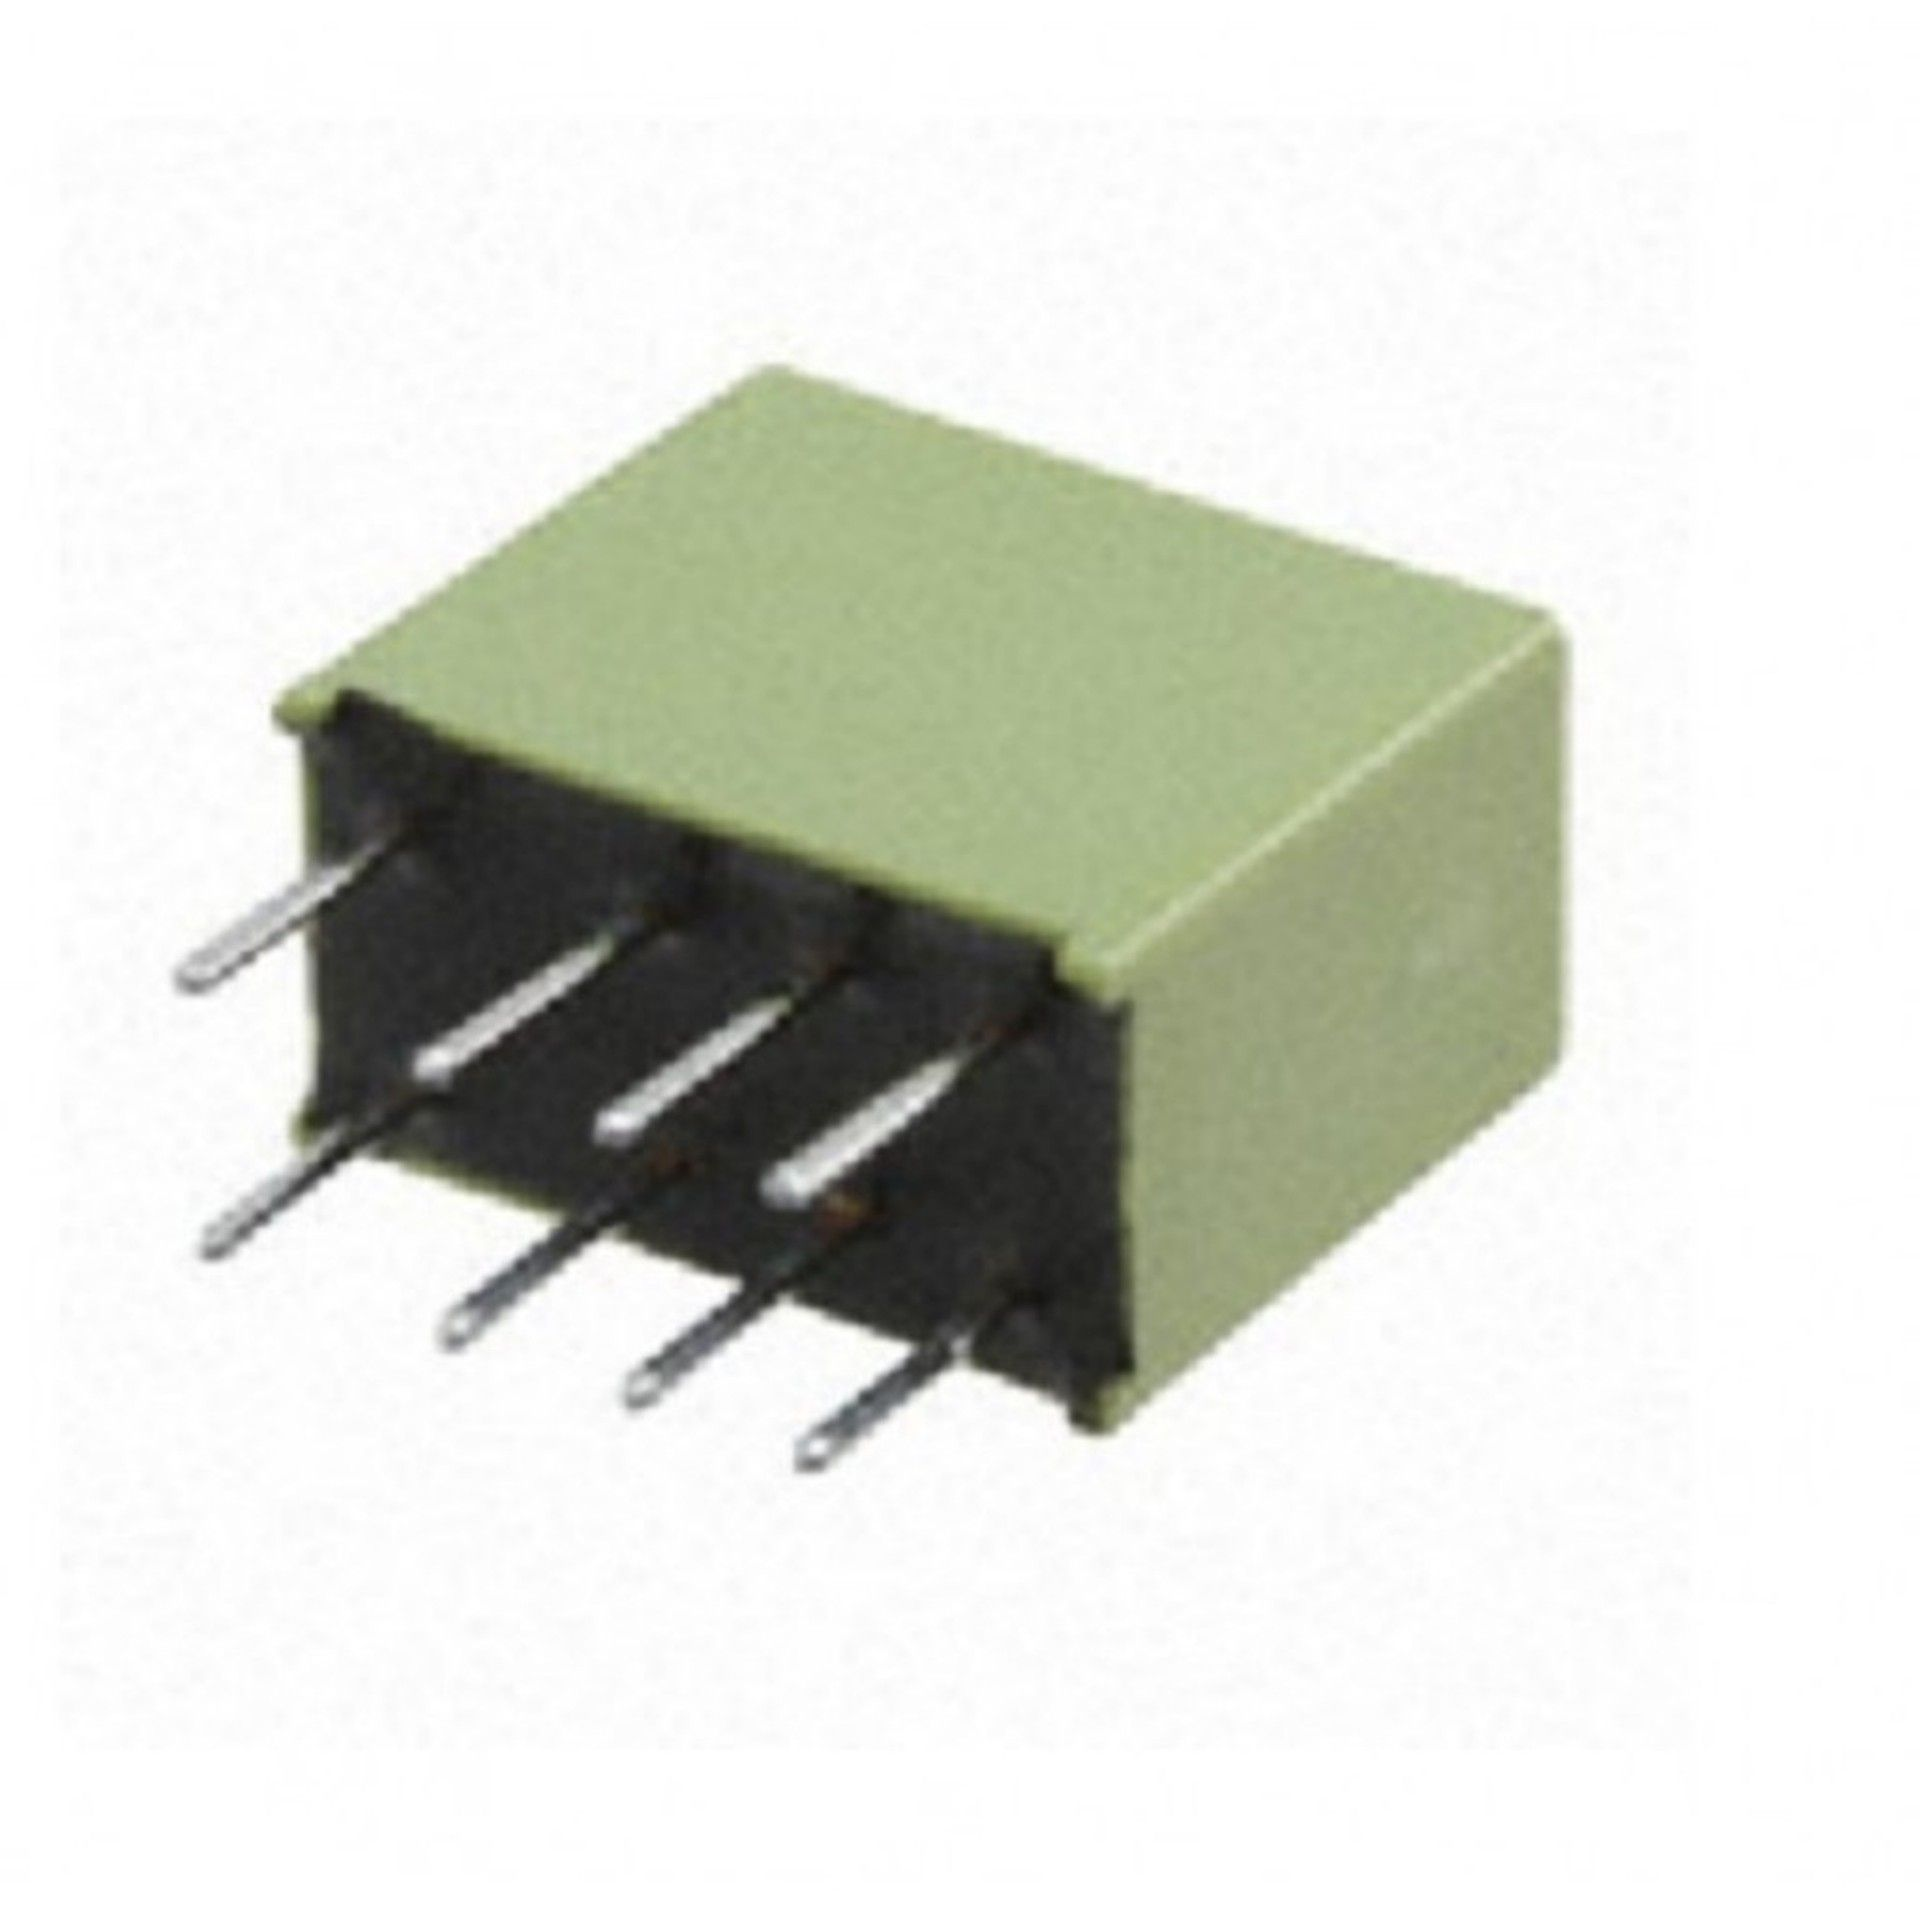 pam 1 relay wiring diagram pam image wiring diagram suppliers of best quality products and 1a 24vdc dpdt non latching on pam 1 relay wiring